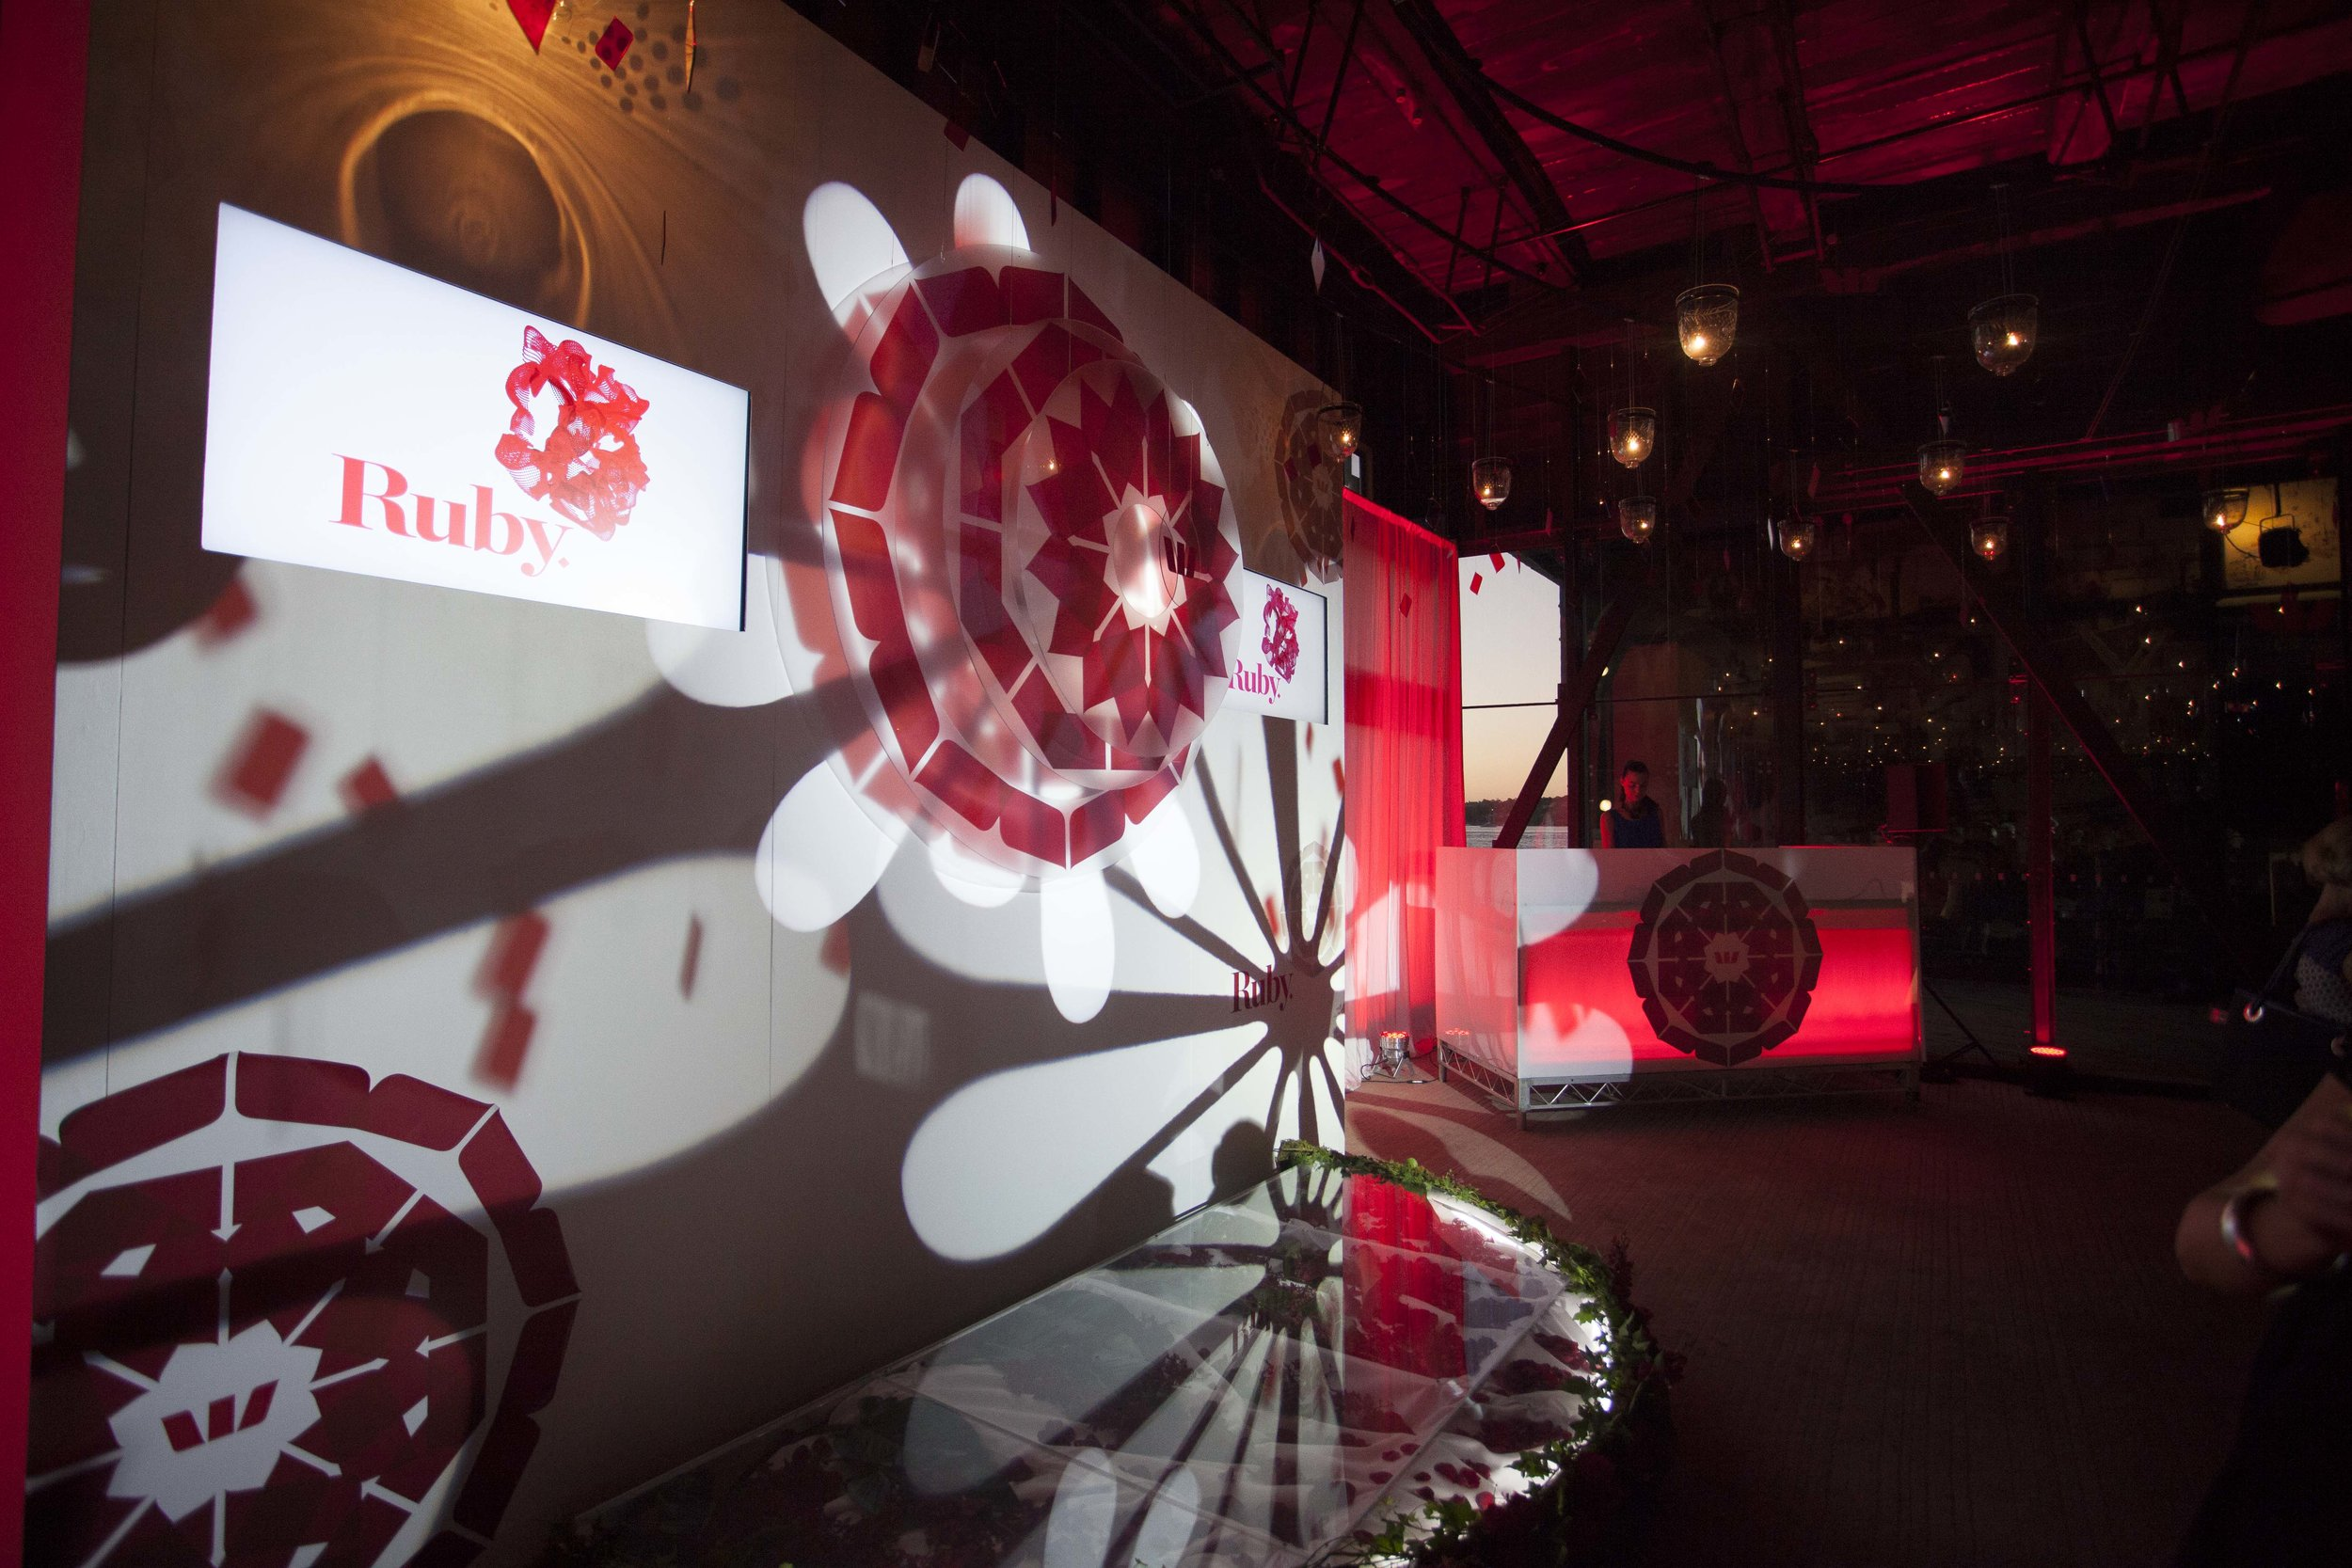 Westpac  Ruby Activation